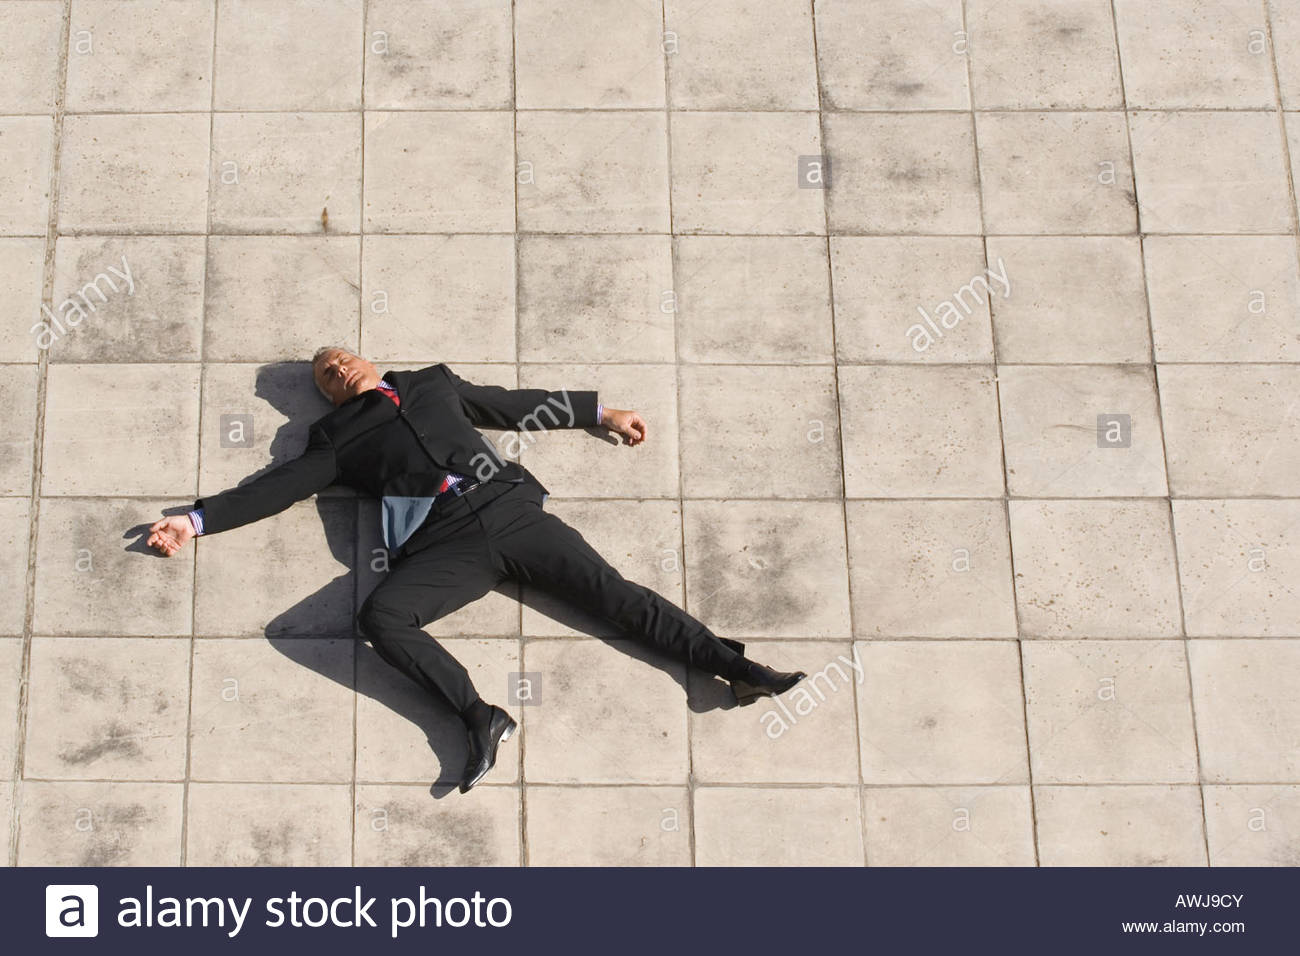 Image result for image of dead body on ground